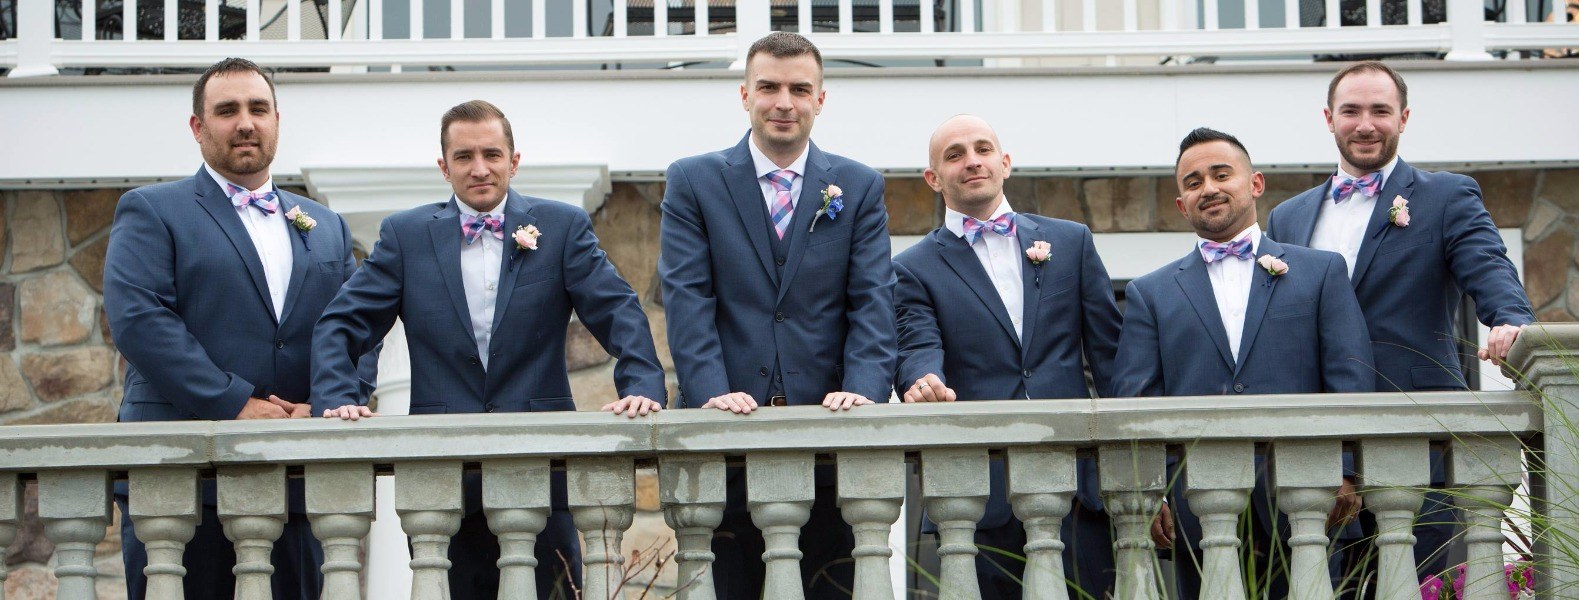 One of my best friends Bobby (middle-left) getting married, those are his best men up there. Great time with great people.